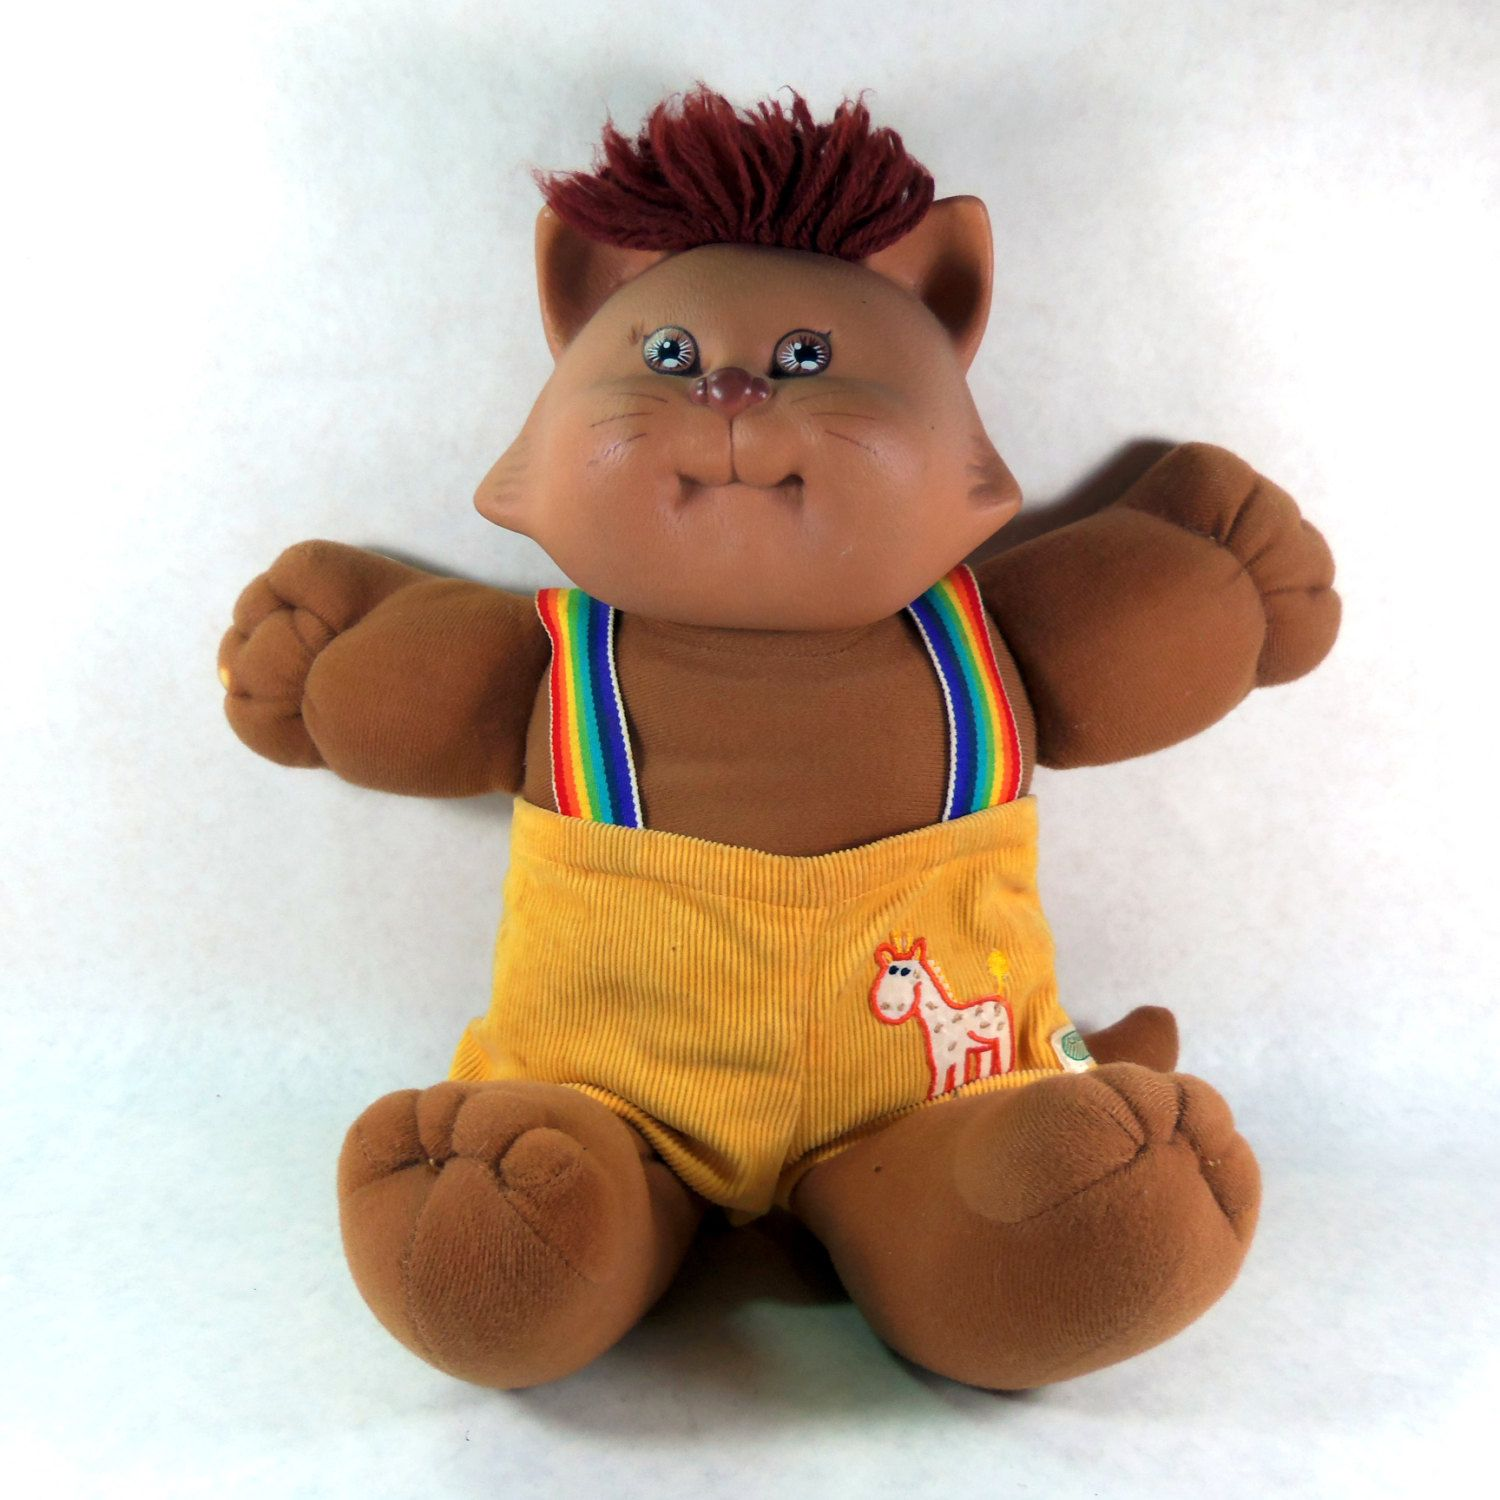 Cabbage Patch Kids Koosas, Xavier Roberts Dog 1983 by TheJunkinSailor on Etsy https://www.etsy.com/listing/180696201/cabbage-patch-kids-koosas-xavier-roberts